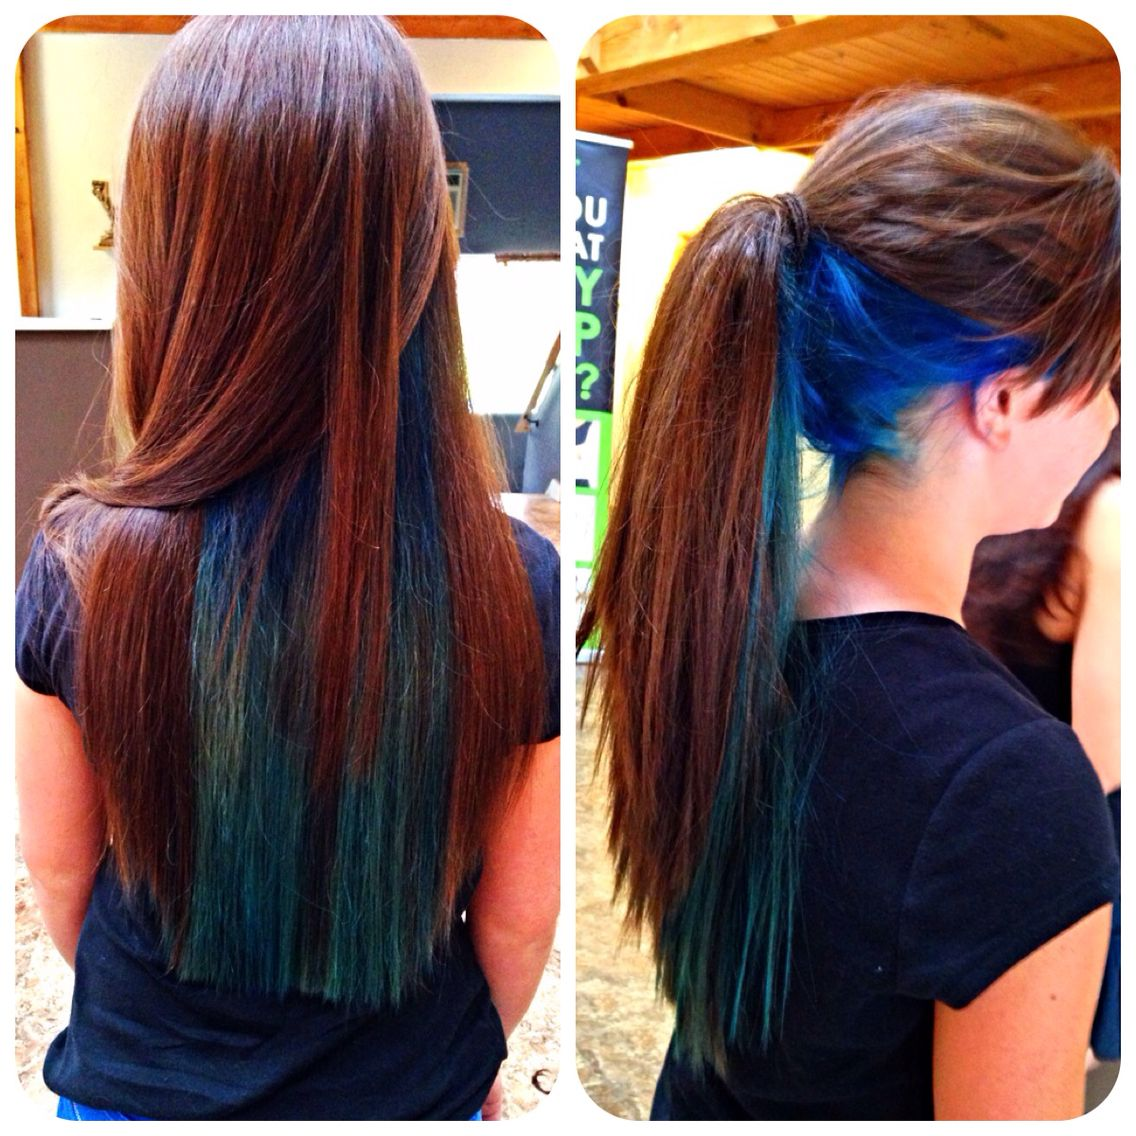 Blue And Teal Under Layer Bright Longhair Colors Hair Streaks